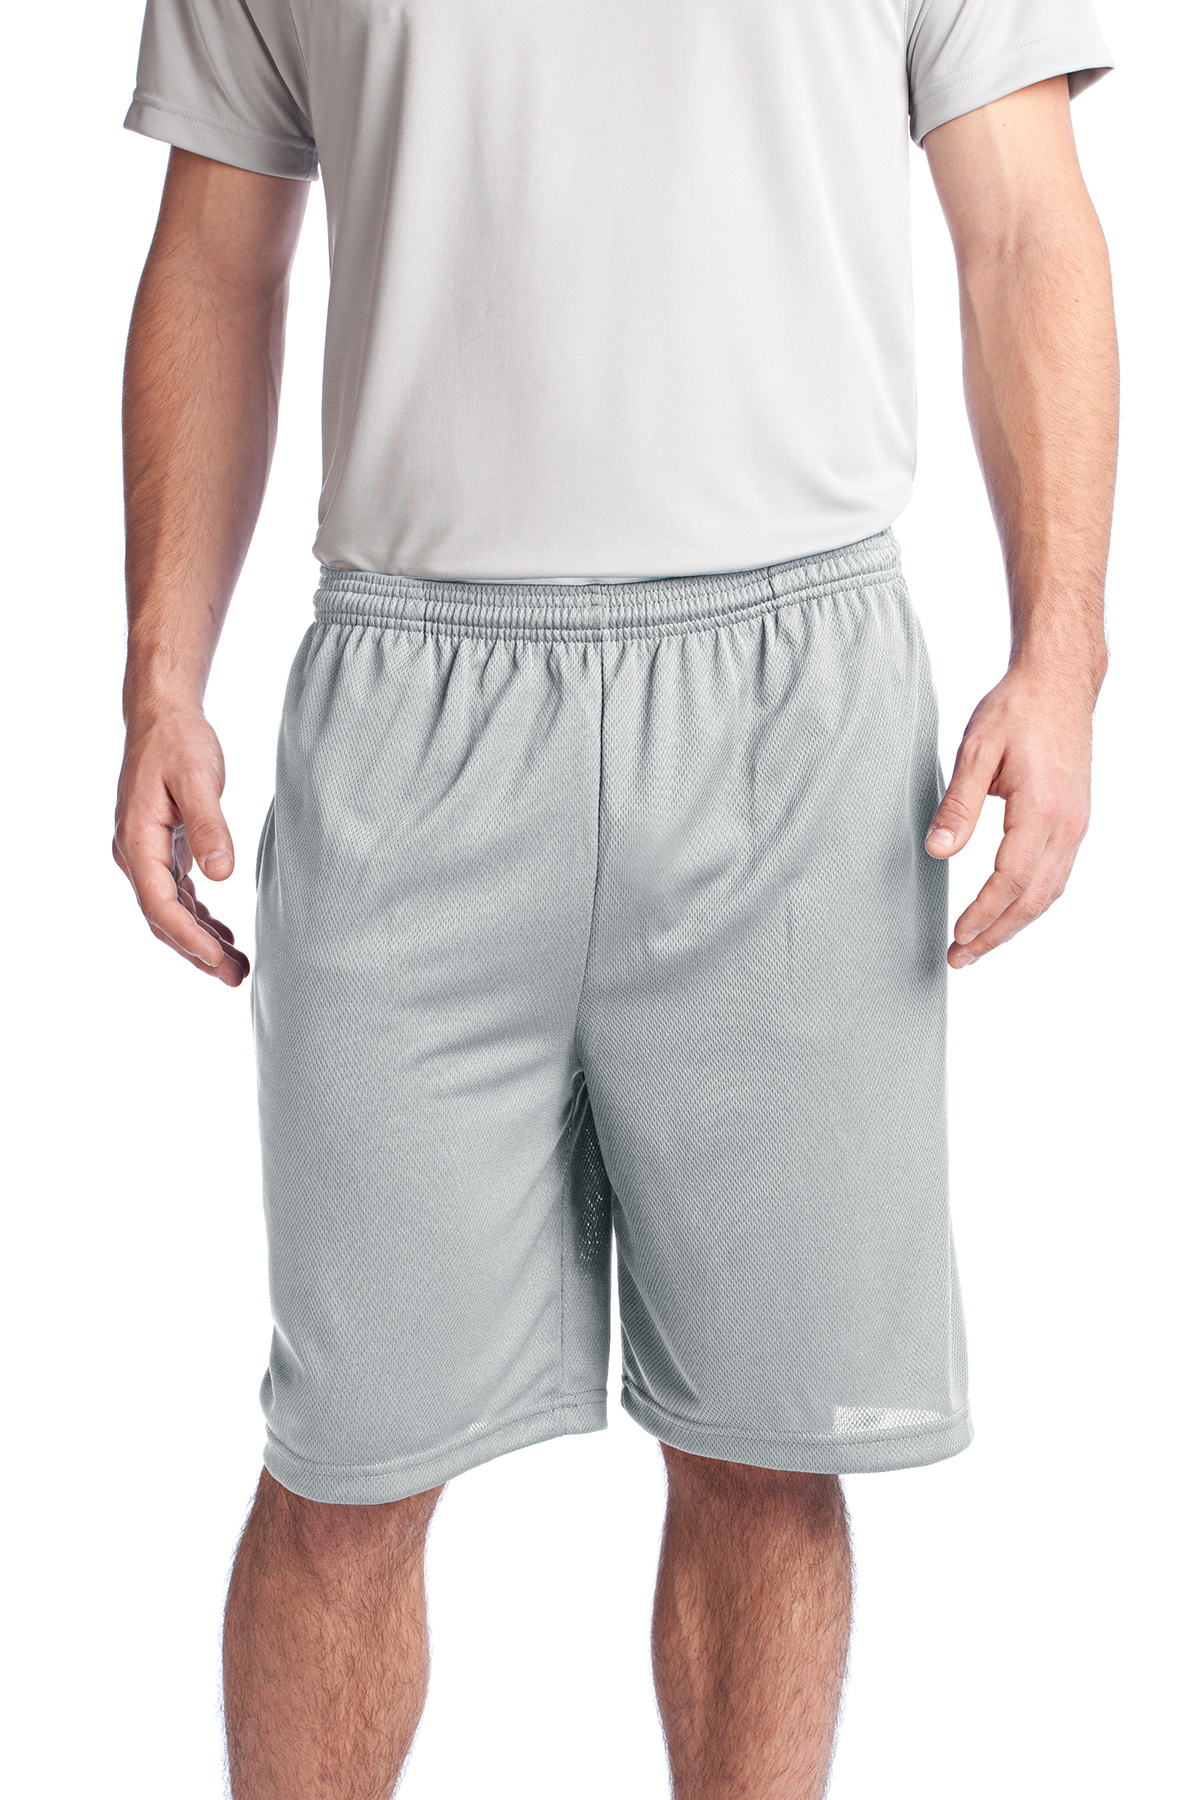 Sport Tek Posicharge Tough Mesh Pocket Short Pants Shorts Activewear Sanmar Find great deals on ebay for mens sports shorts zip pockets. sanmar